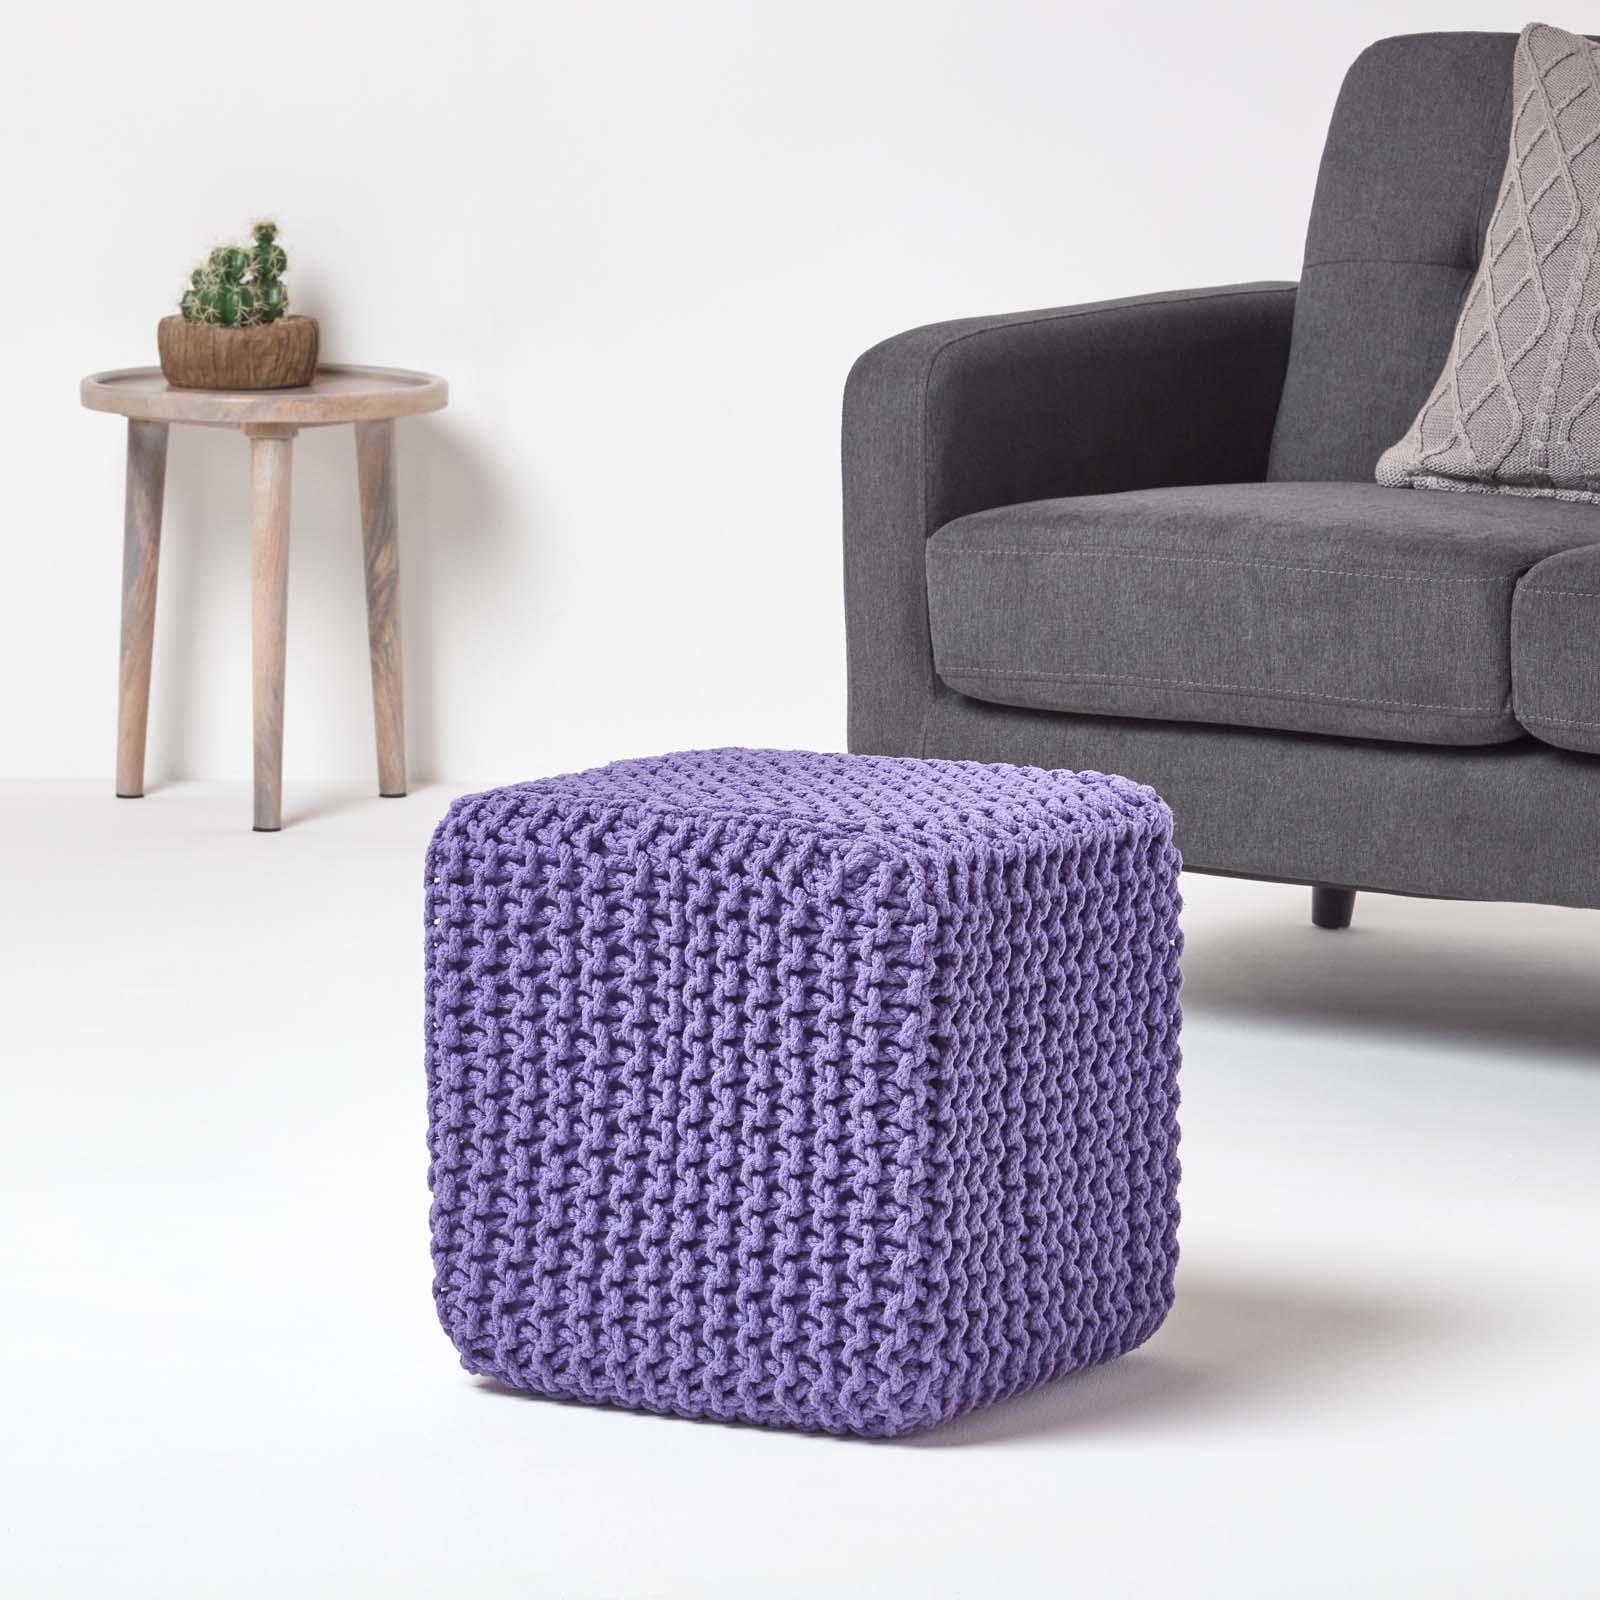 Hand-Knitted-100-Cotton-Pouffes-Round-Sphere-Or-Cube-Square-Chunky-Footstools thumbnail 165